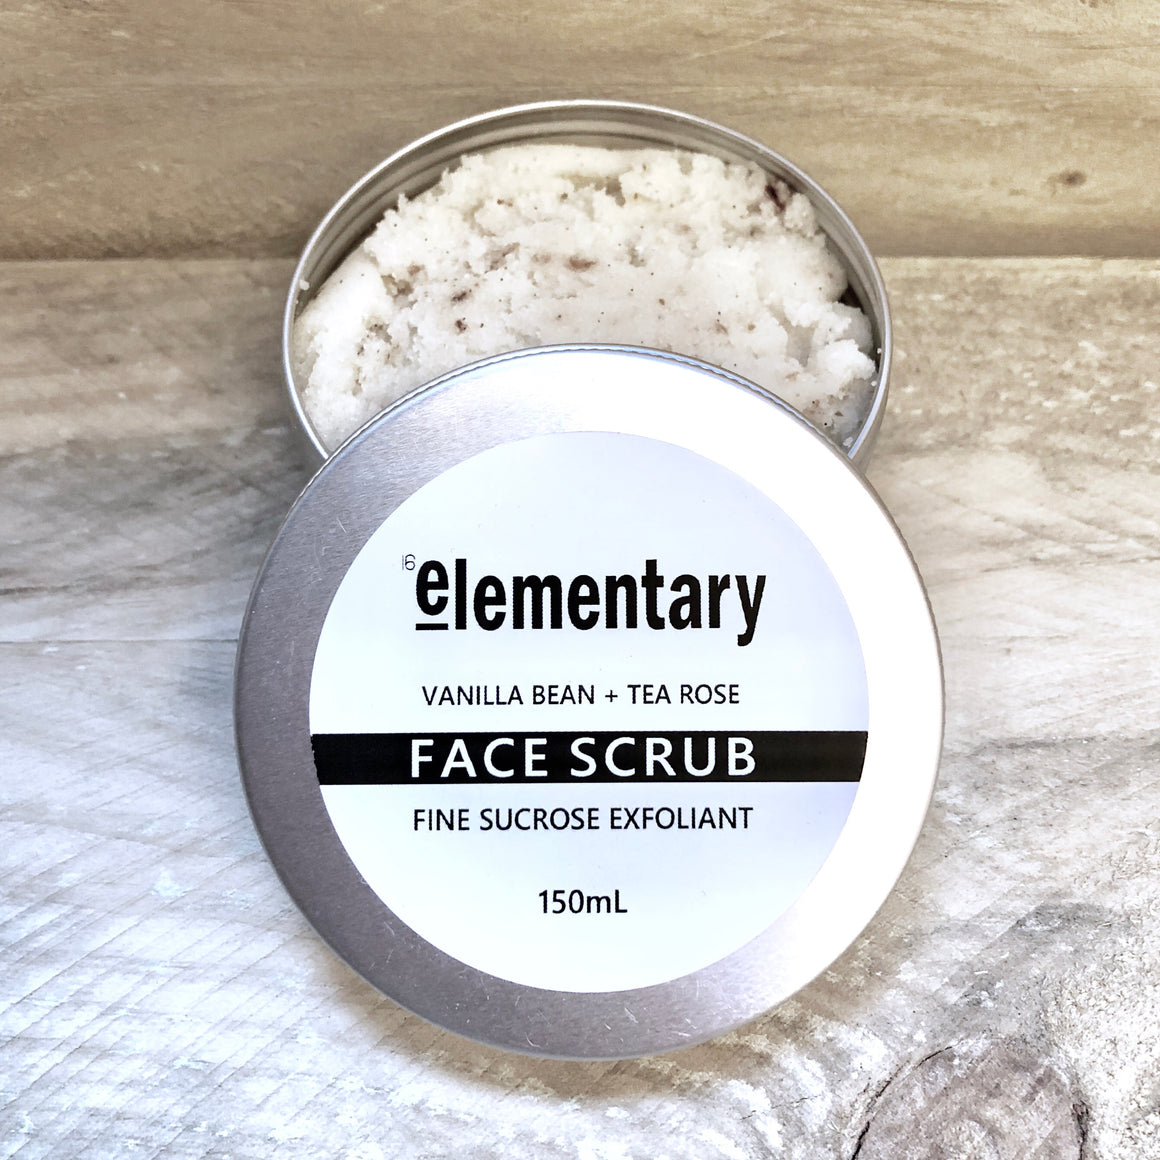 SCRUB | Exfoliating Tea Rose + Vanilla Bean with Fine Sucrose - KISS Skin Care | Australia, Scrubs & Exfoliants